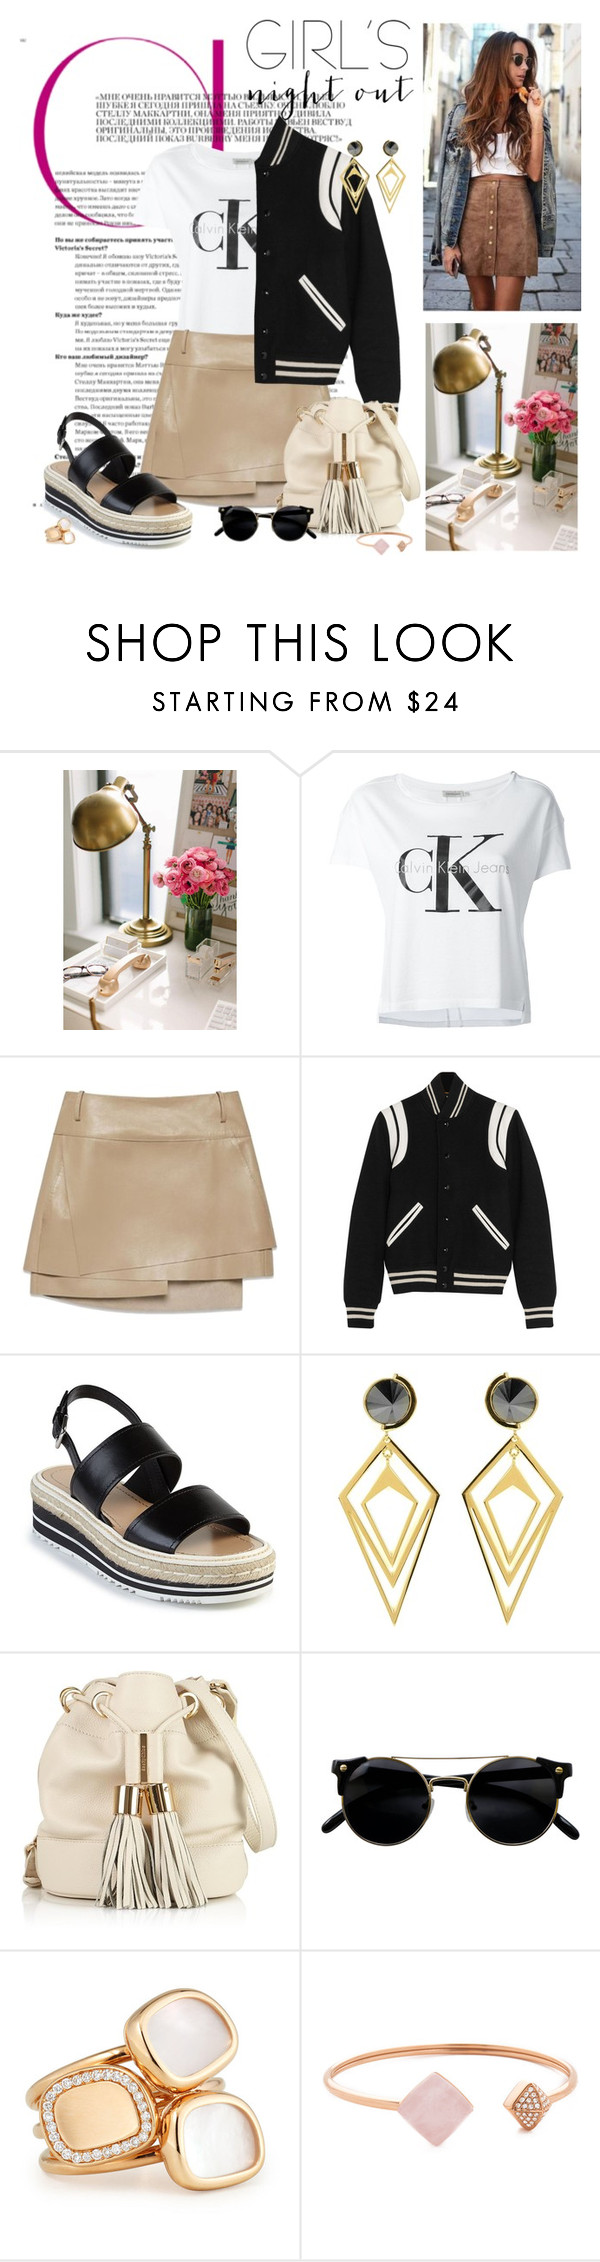 """#269"" by nikol128 ❤ liked on Polyvore featuring Elie Saab, Calvin Klein Jeans, Helmut Lang, Yves Saint Laurent, Prada, Sarah Magid, See by Chloé, Roberto Coin and Michael Kors"